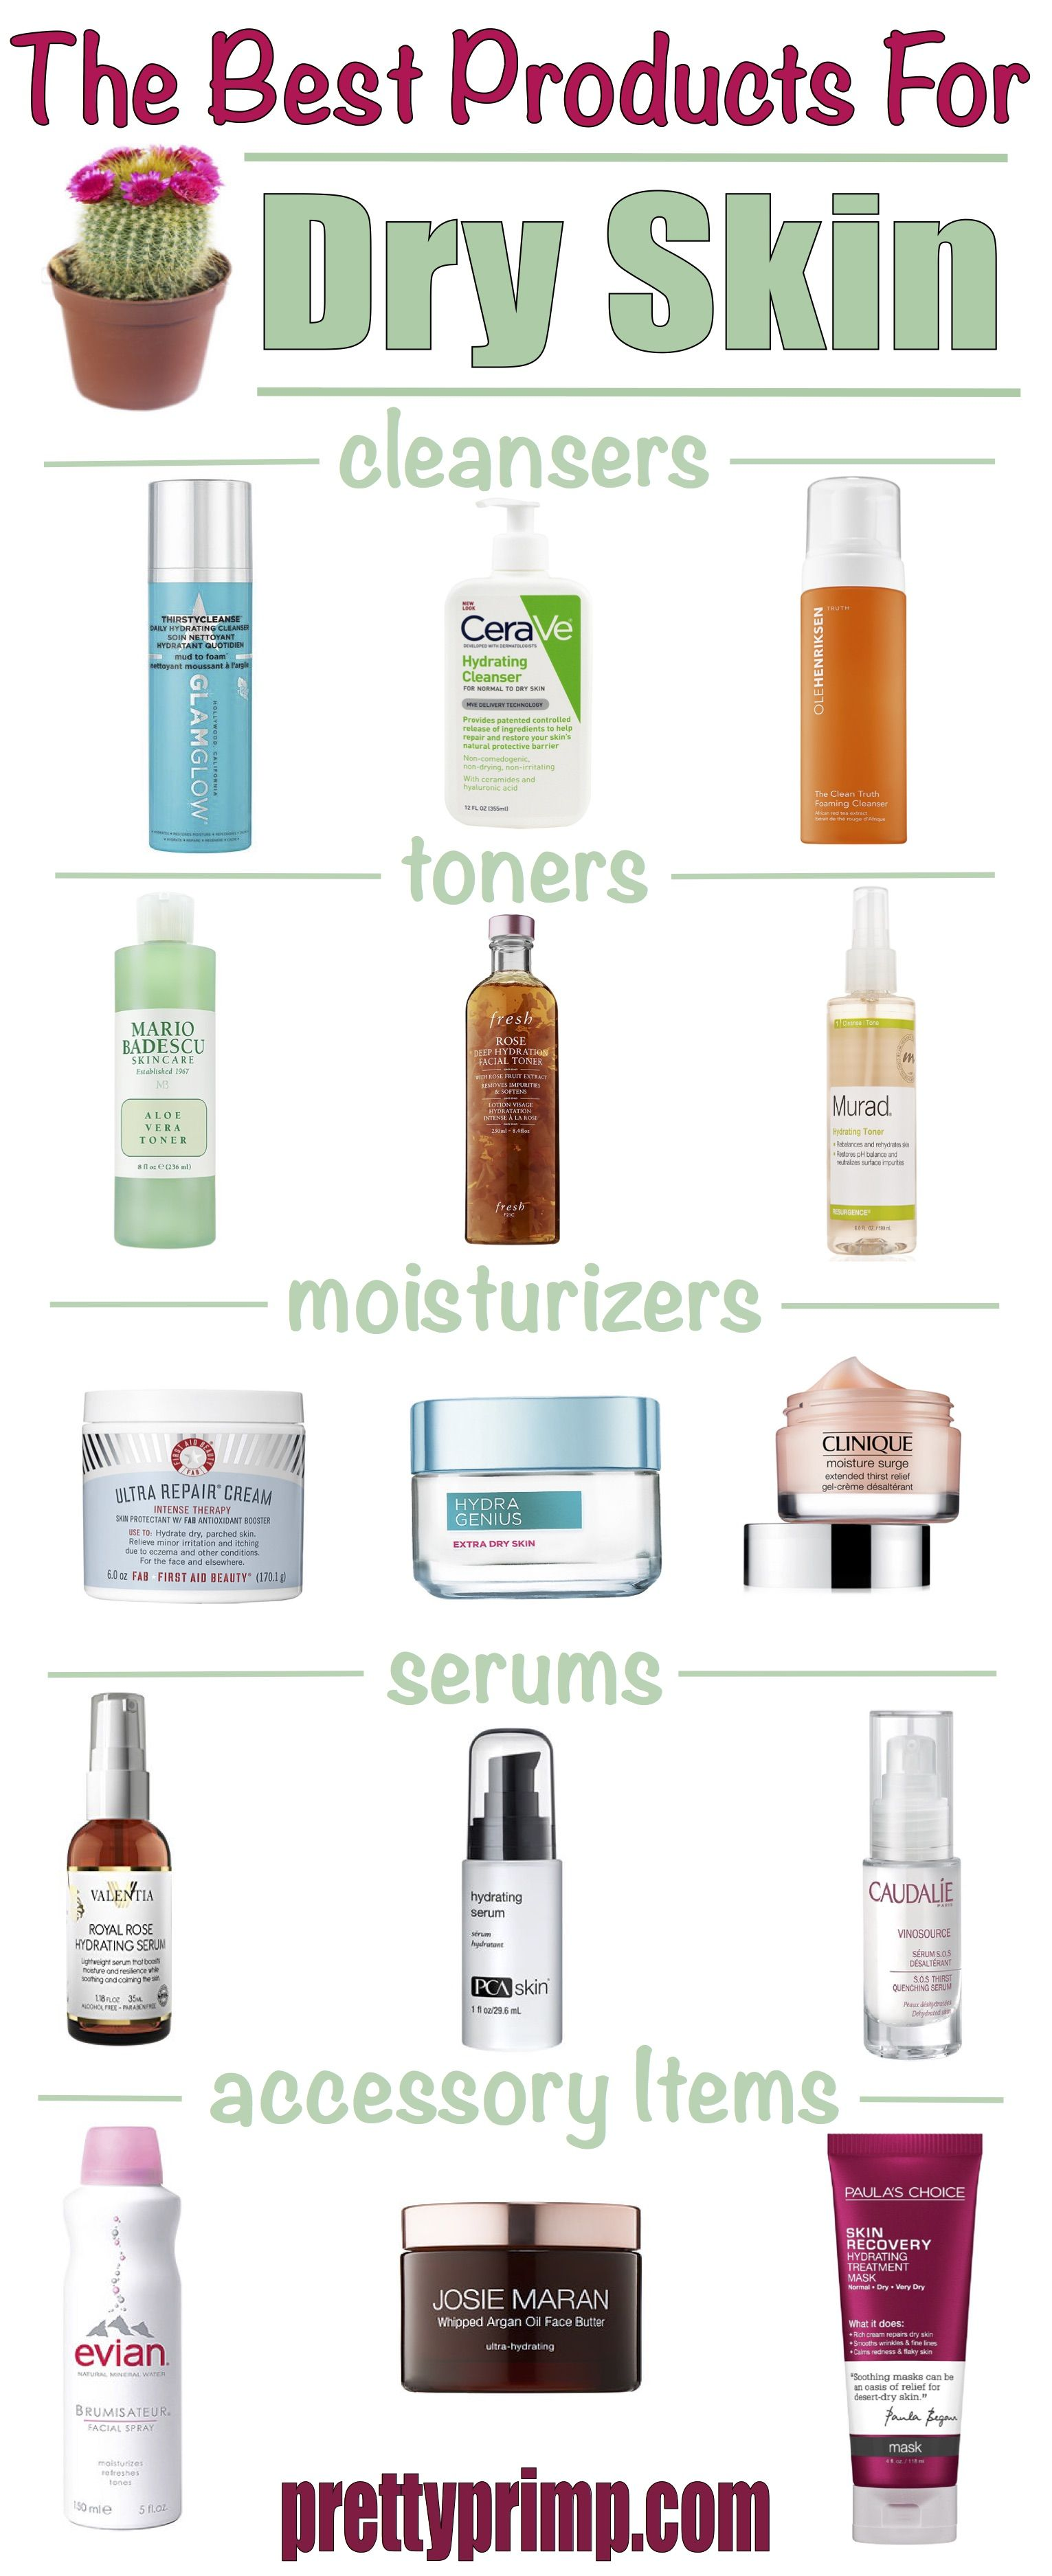 15 Best Products For Dry Skin To Restore Suppleness And Moisture Oil For Dry Skin Dry Skin Cleansers Skin Cleanser Products